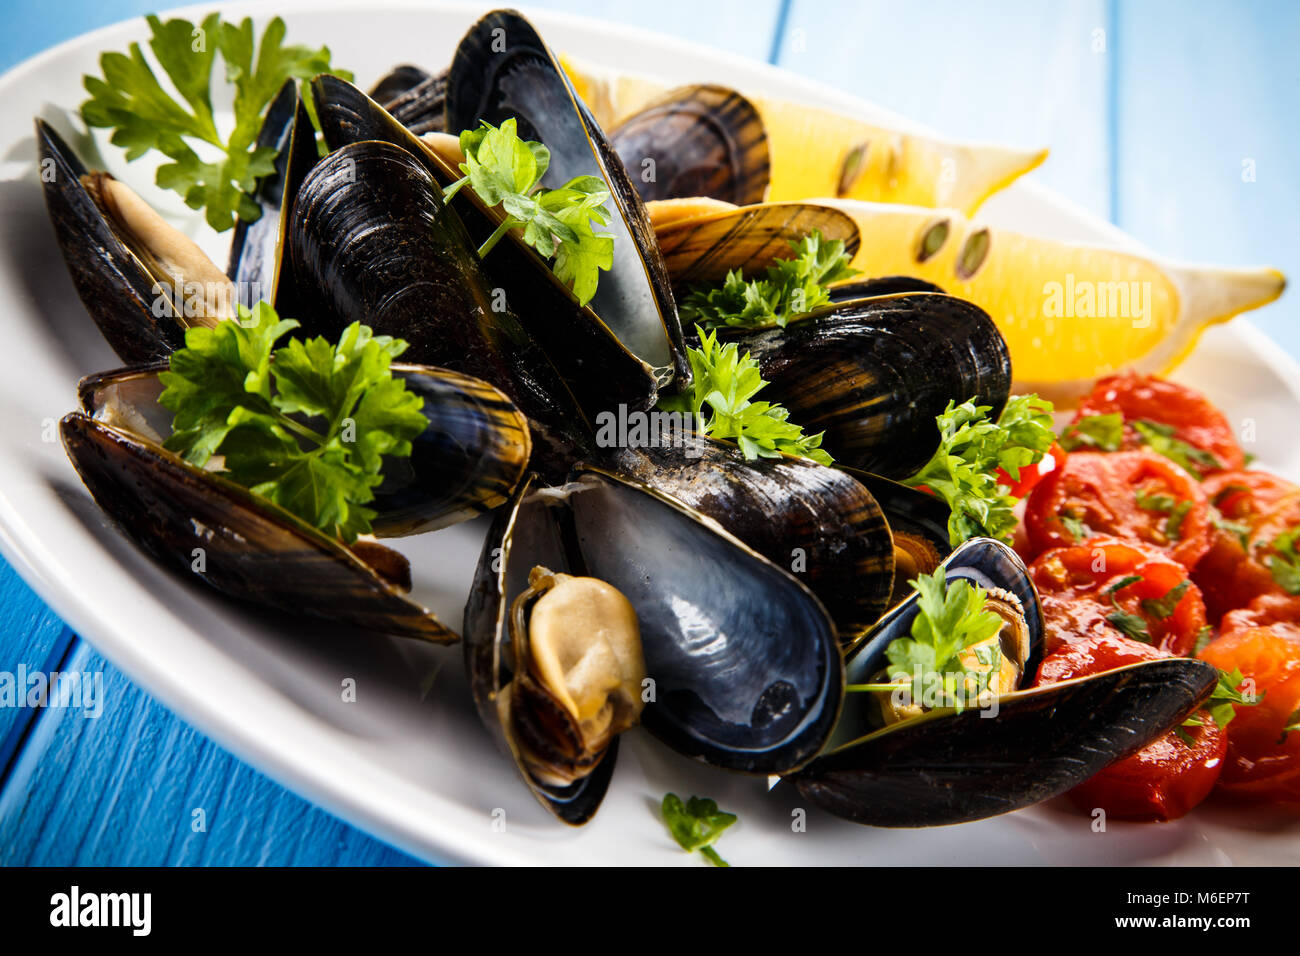 Cooked mussels with lemon and cherry tomatoes - Stock Image